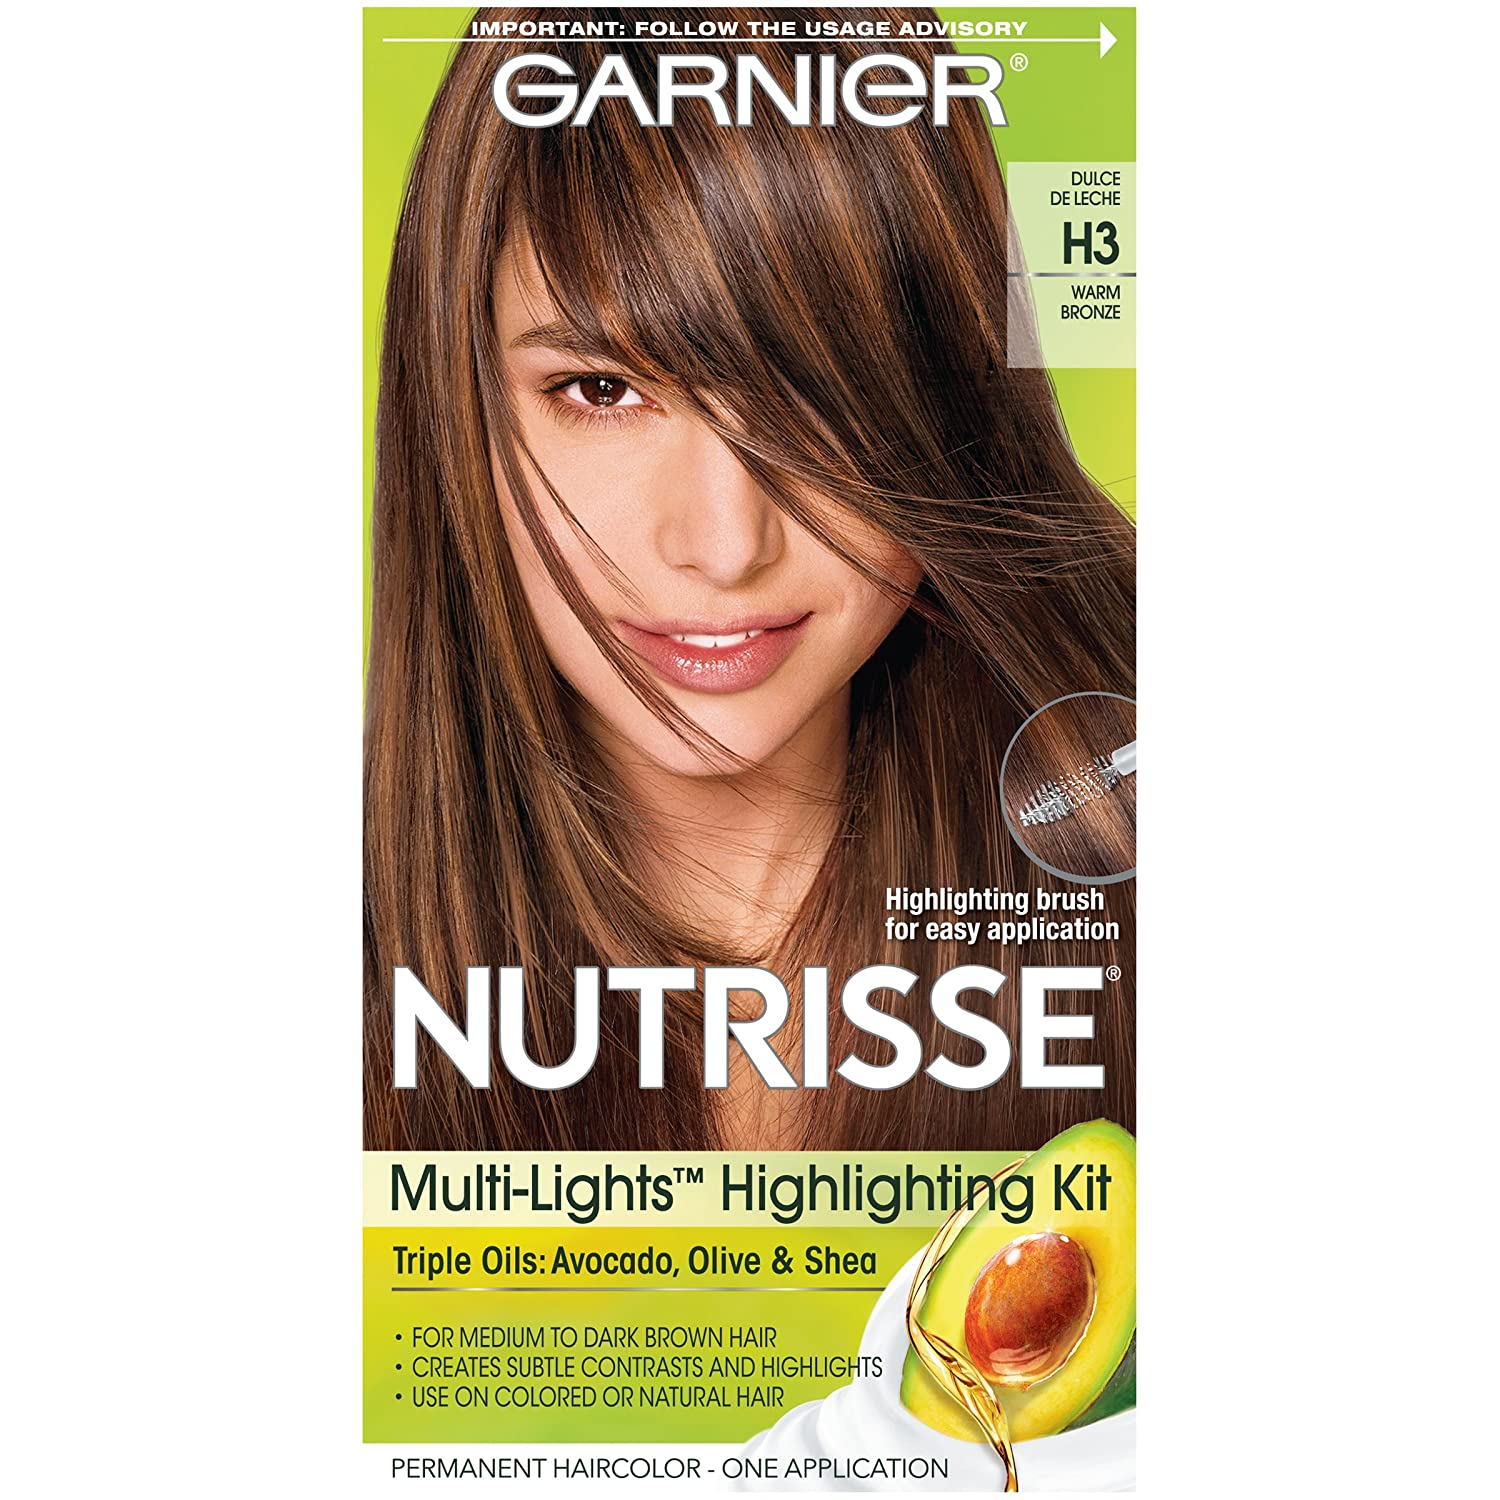 Garnier Nutrisse Multi Lights Hair Highlighting Kit H3 Warm Bronze